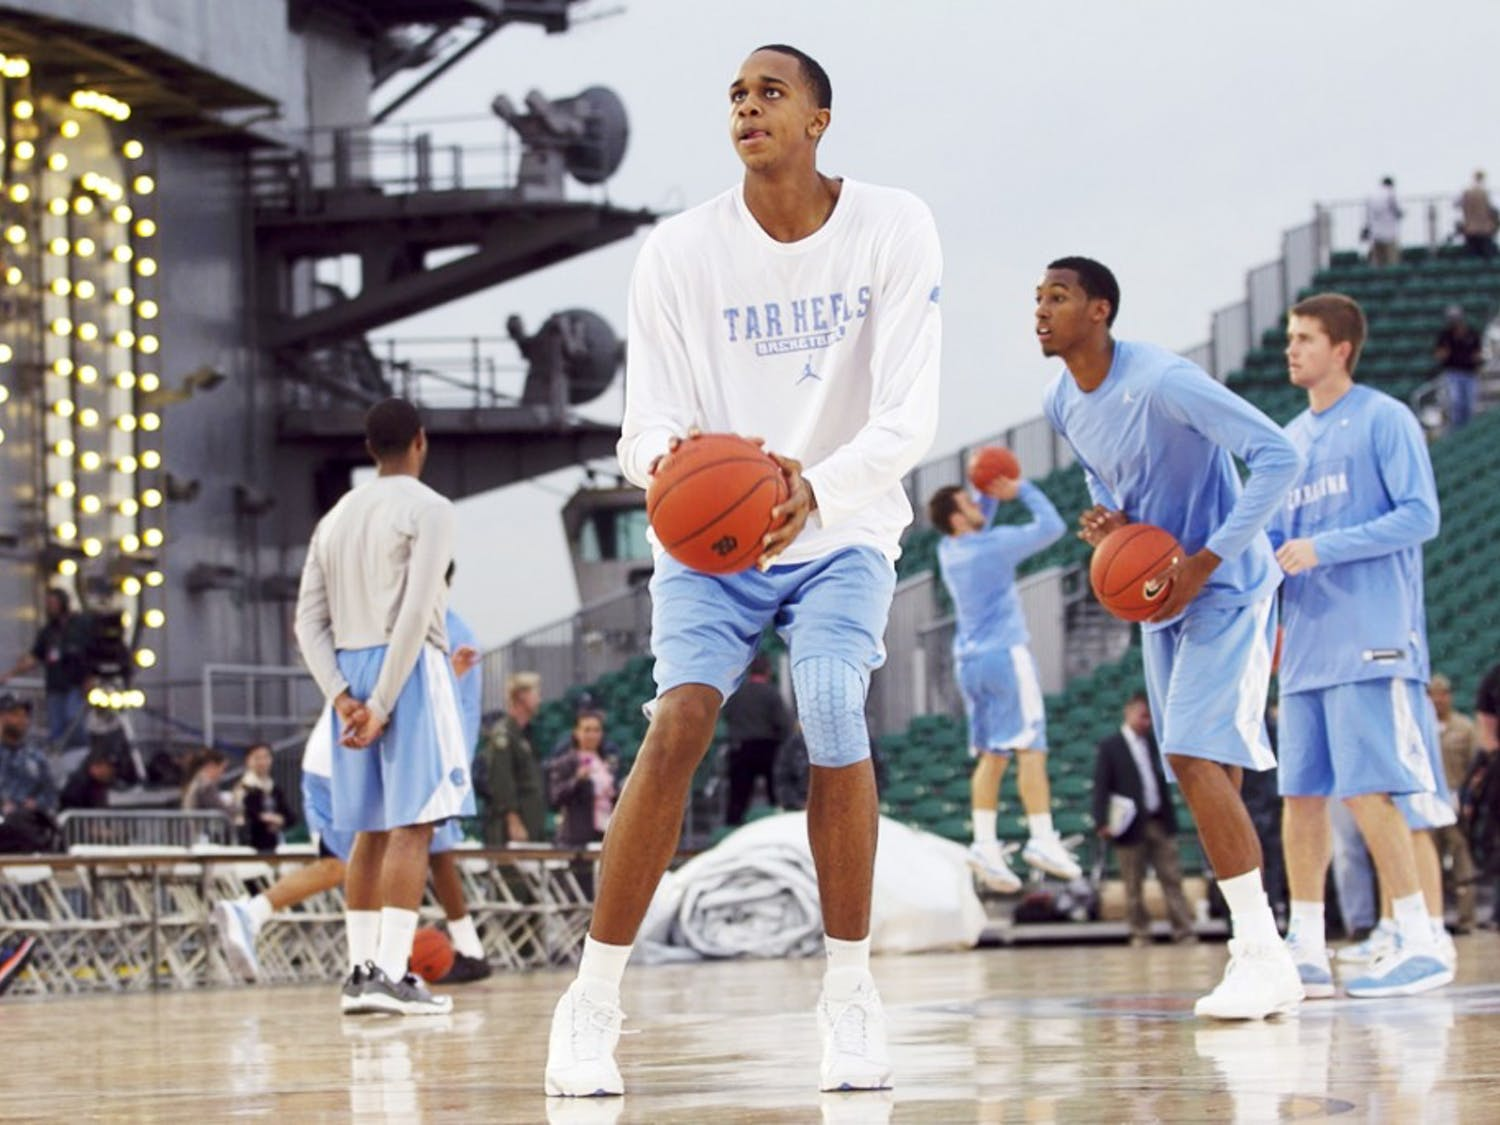 North Carolina's John Henson (31) and his teammates go through a shoot around on the deck of the USS Carl Vinson in Coronado, California, Thursday November 10, 2011. UNC practiced for the game with Michigan State on the carrier during the Carrier Classic on Veterans Day. (Robert Willett/Raleigh News & Observer/MCT)